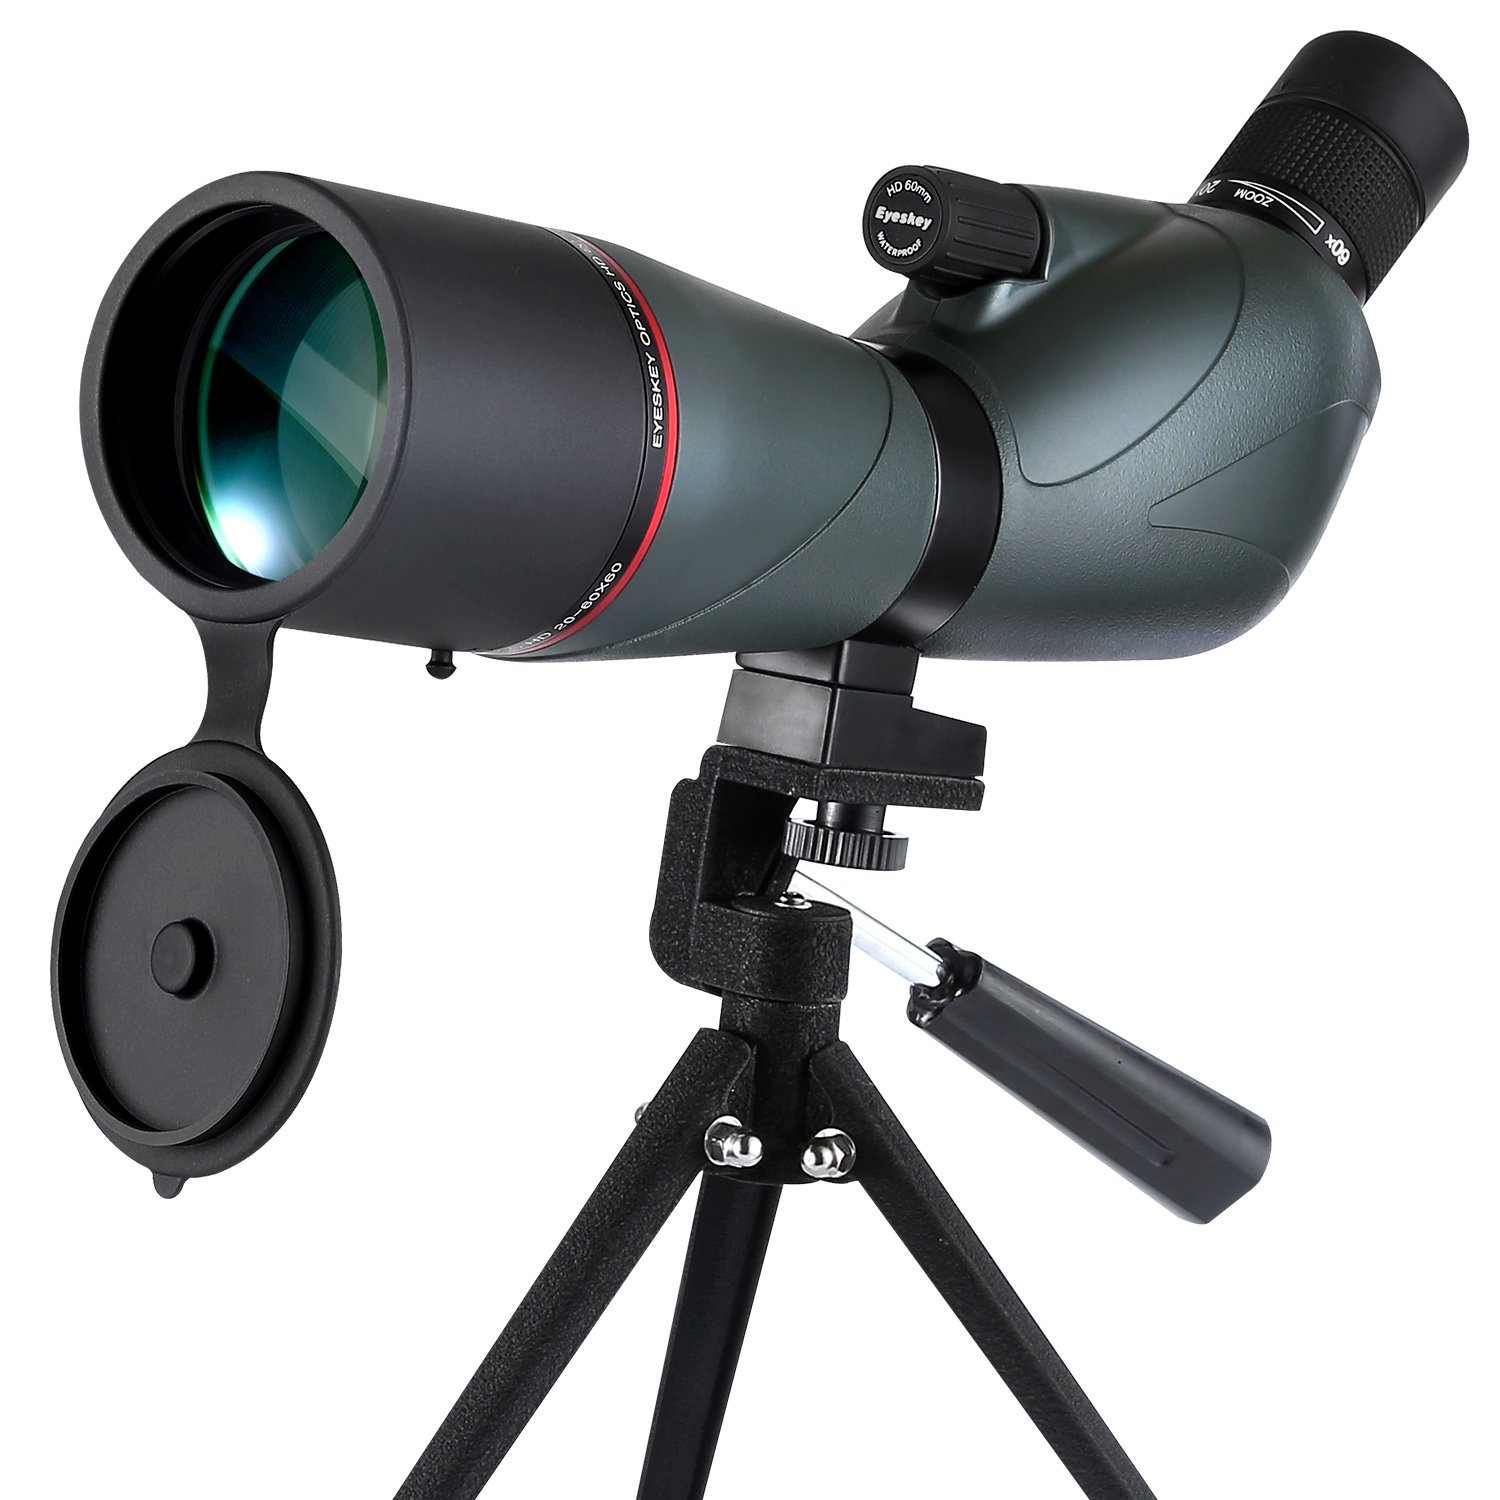 [Upgraded] Eyeskey Waterproof 20-60x60 Zoom Spotting Scope Telescope - Professional for Hunting-Porro Prism Spotting Scopes with Carry Pouch and Tripod, Green by Eyeskey